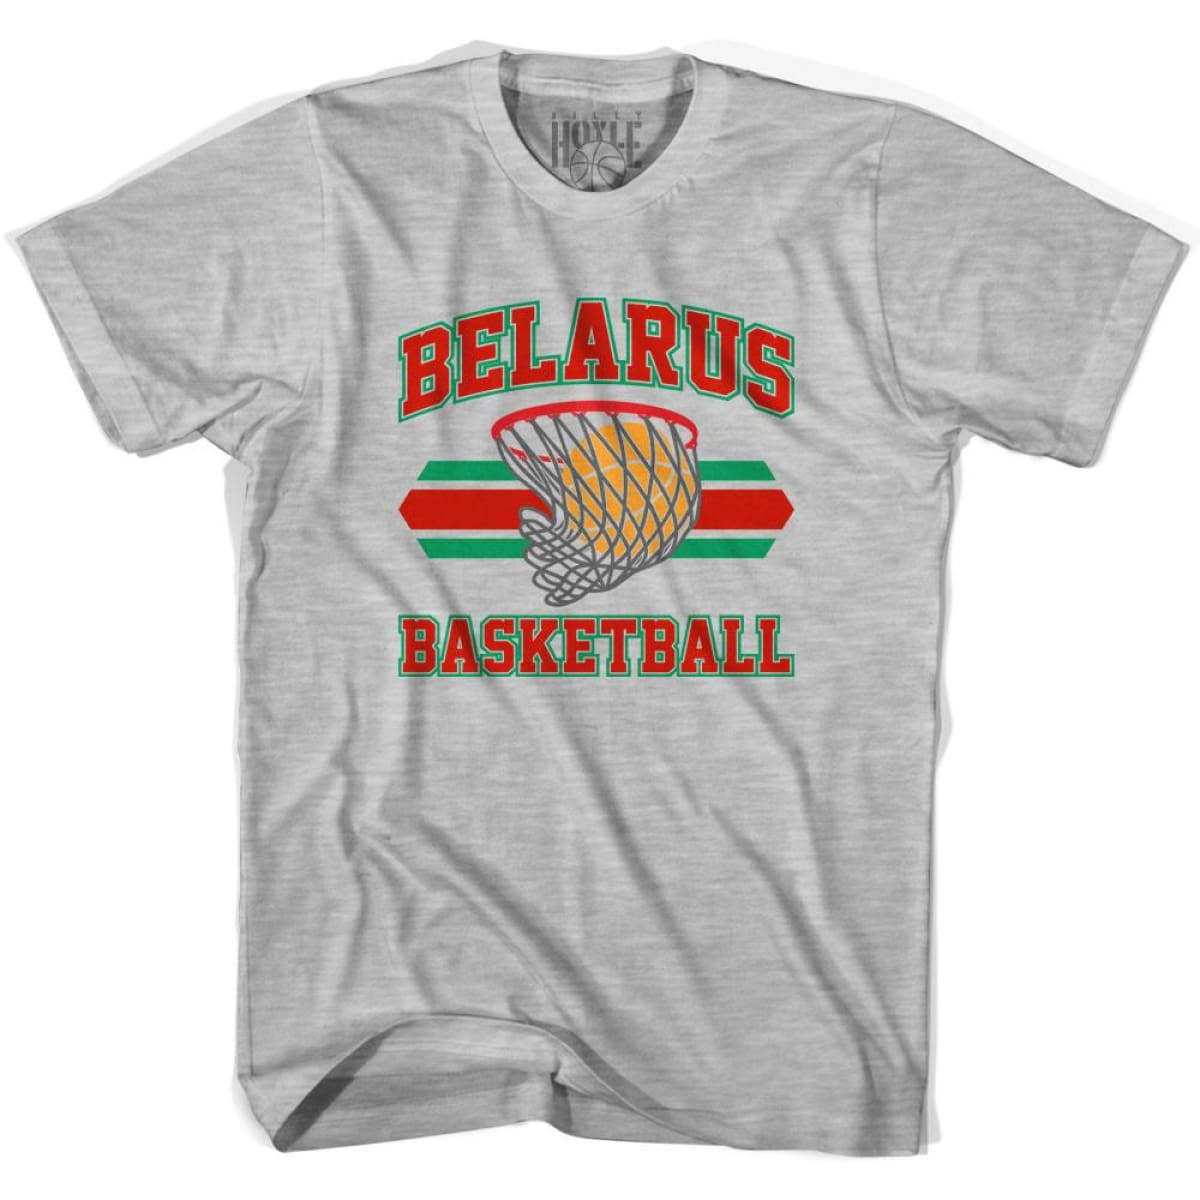 Belarus Basketball 90s Basketball T-shirt - Grey Heather / Youth X-Small - Basketball T-shirt